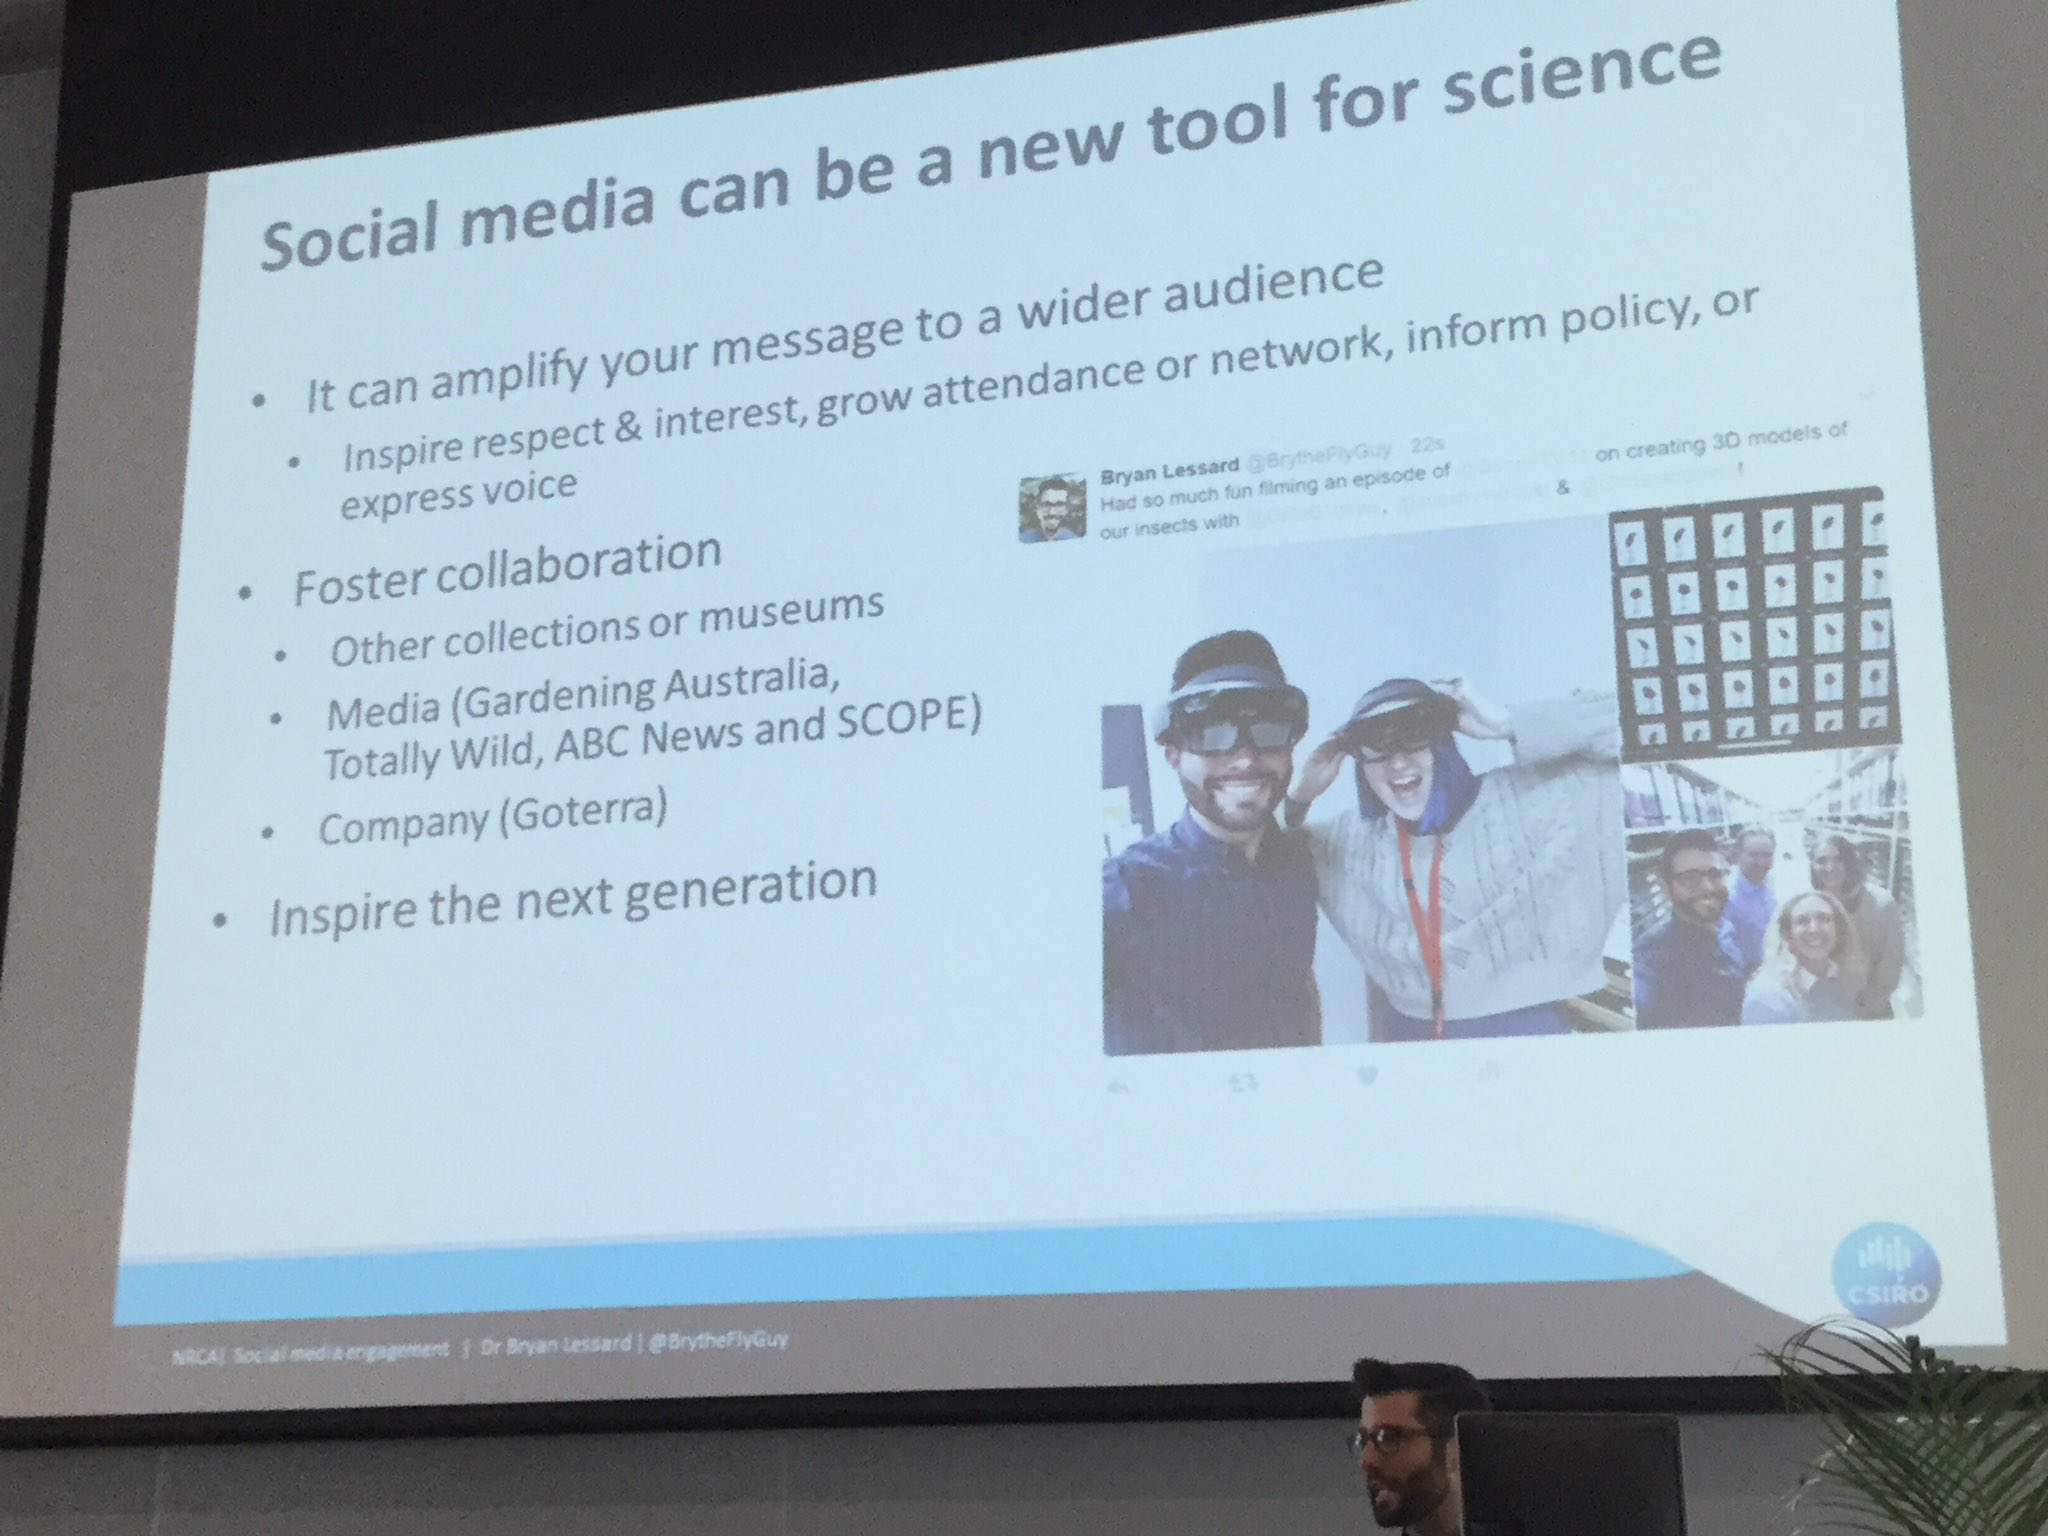 #social media for #science can promote collaboration and inspire next generations @BrytheFlyGuy #OOTB https://t.co/Ixn6hvPEB5